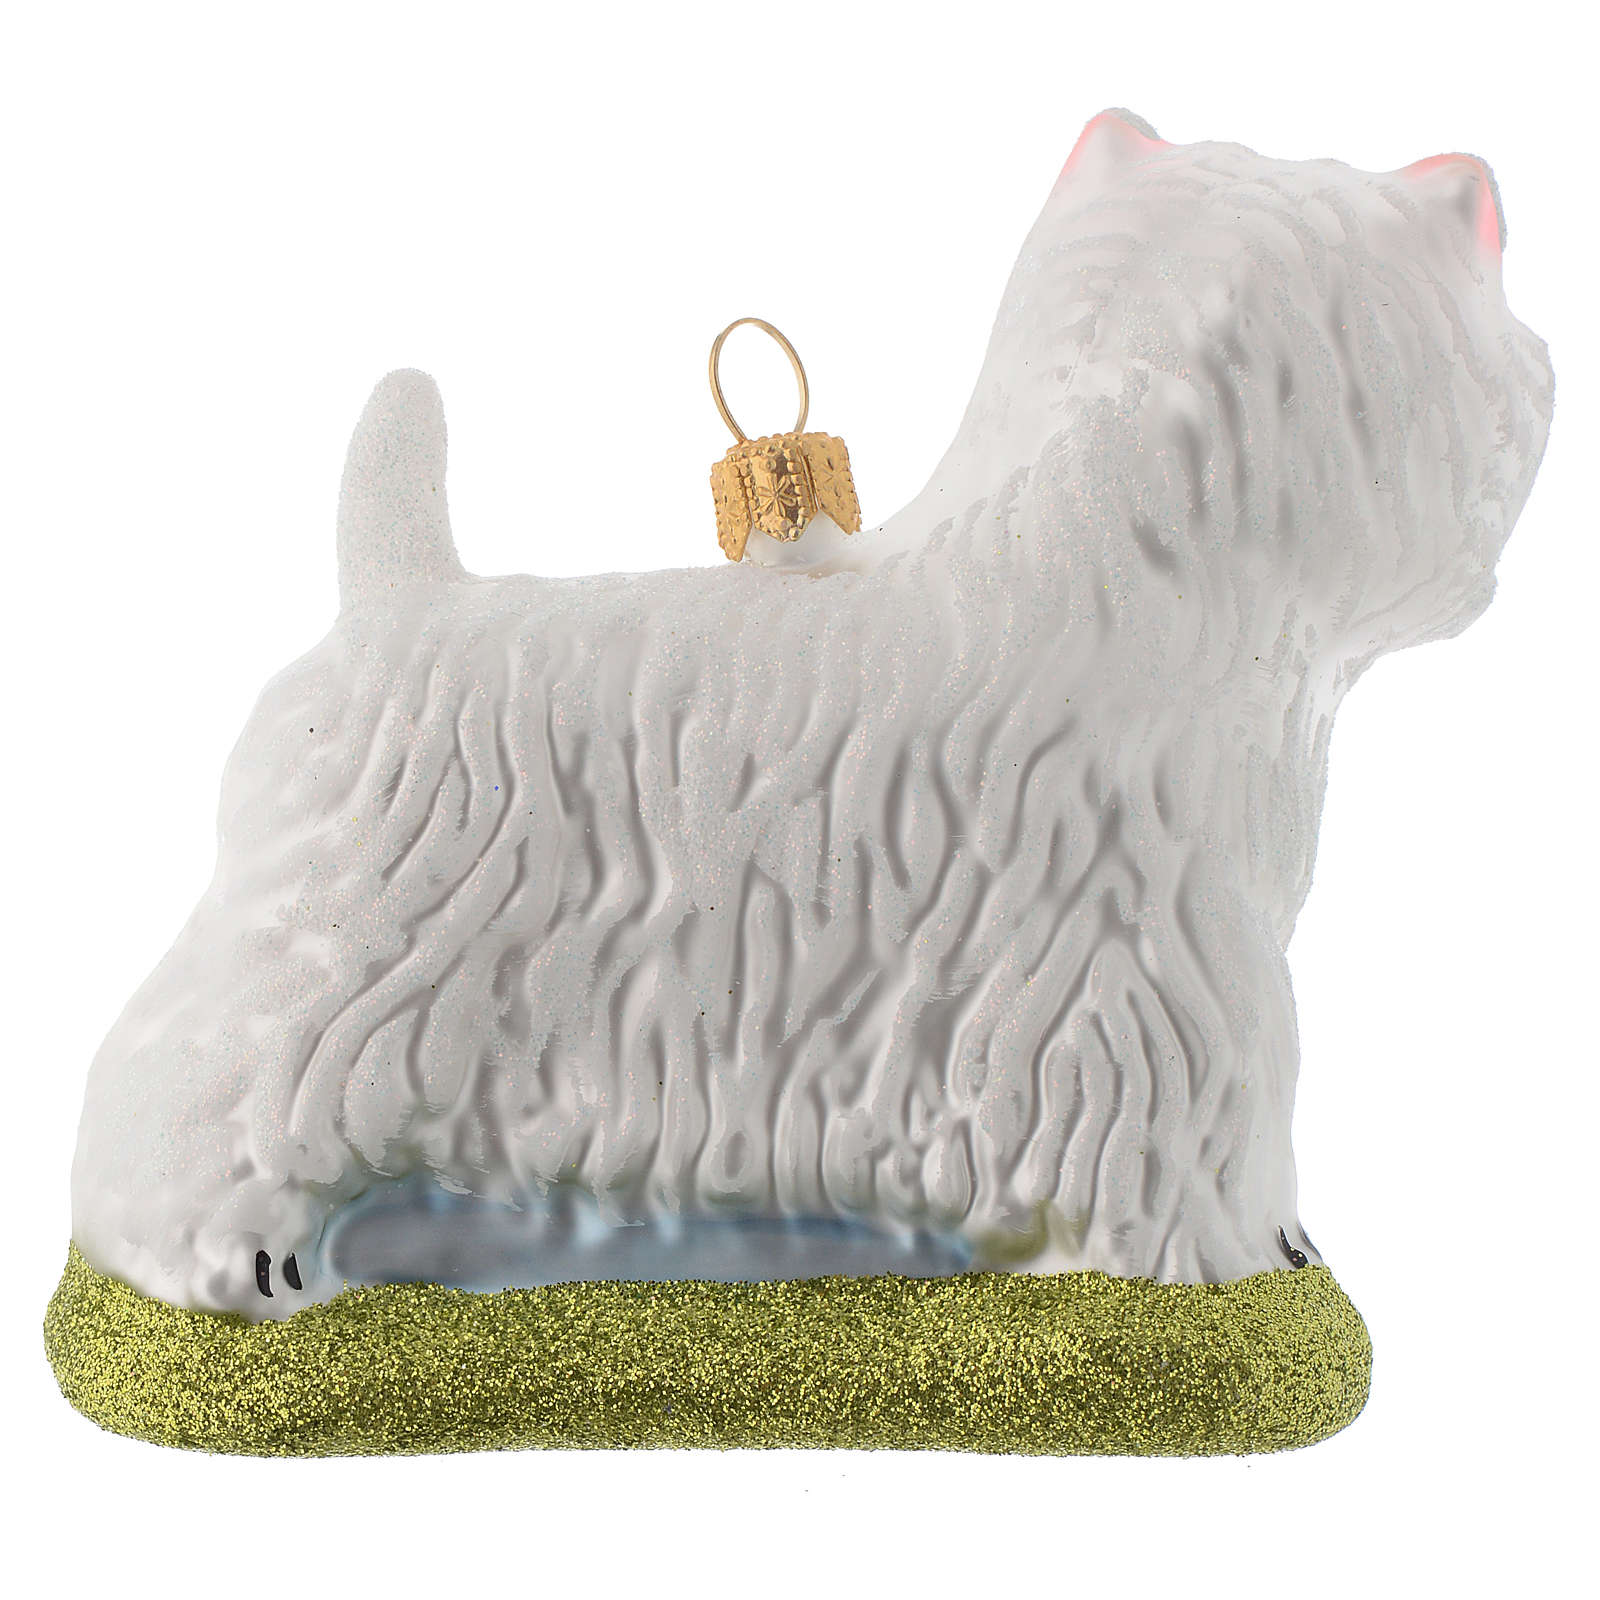 Westie Dog Christmas Holiday Ornament Up To Snow Good